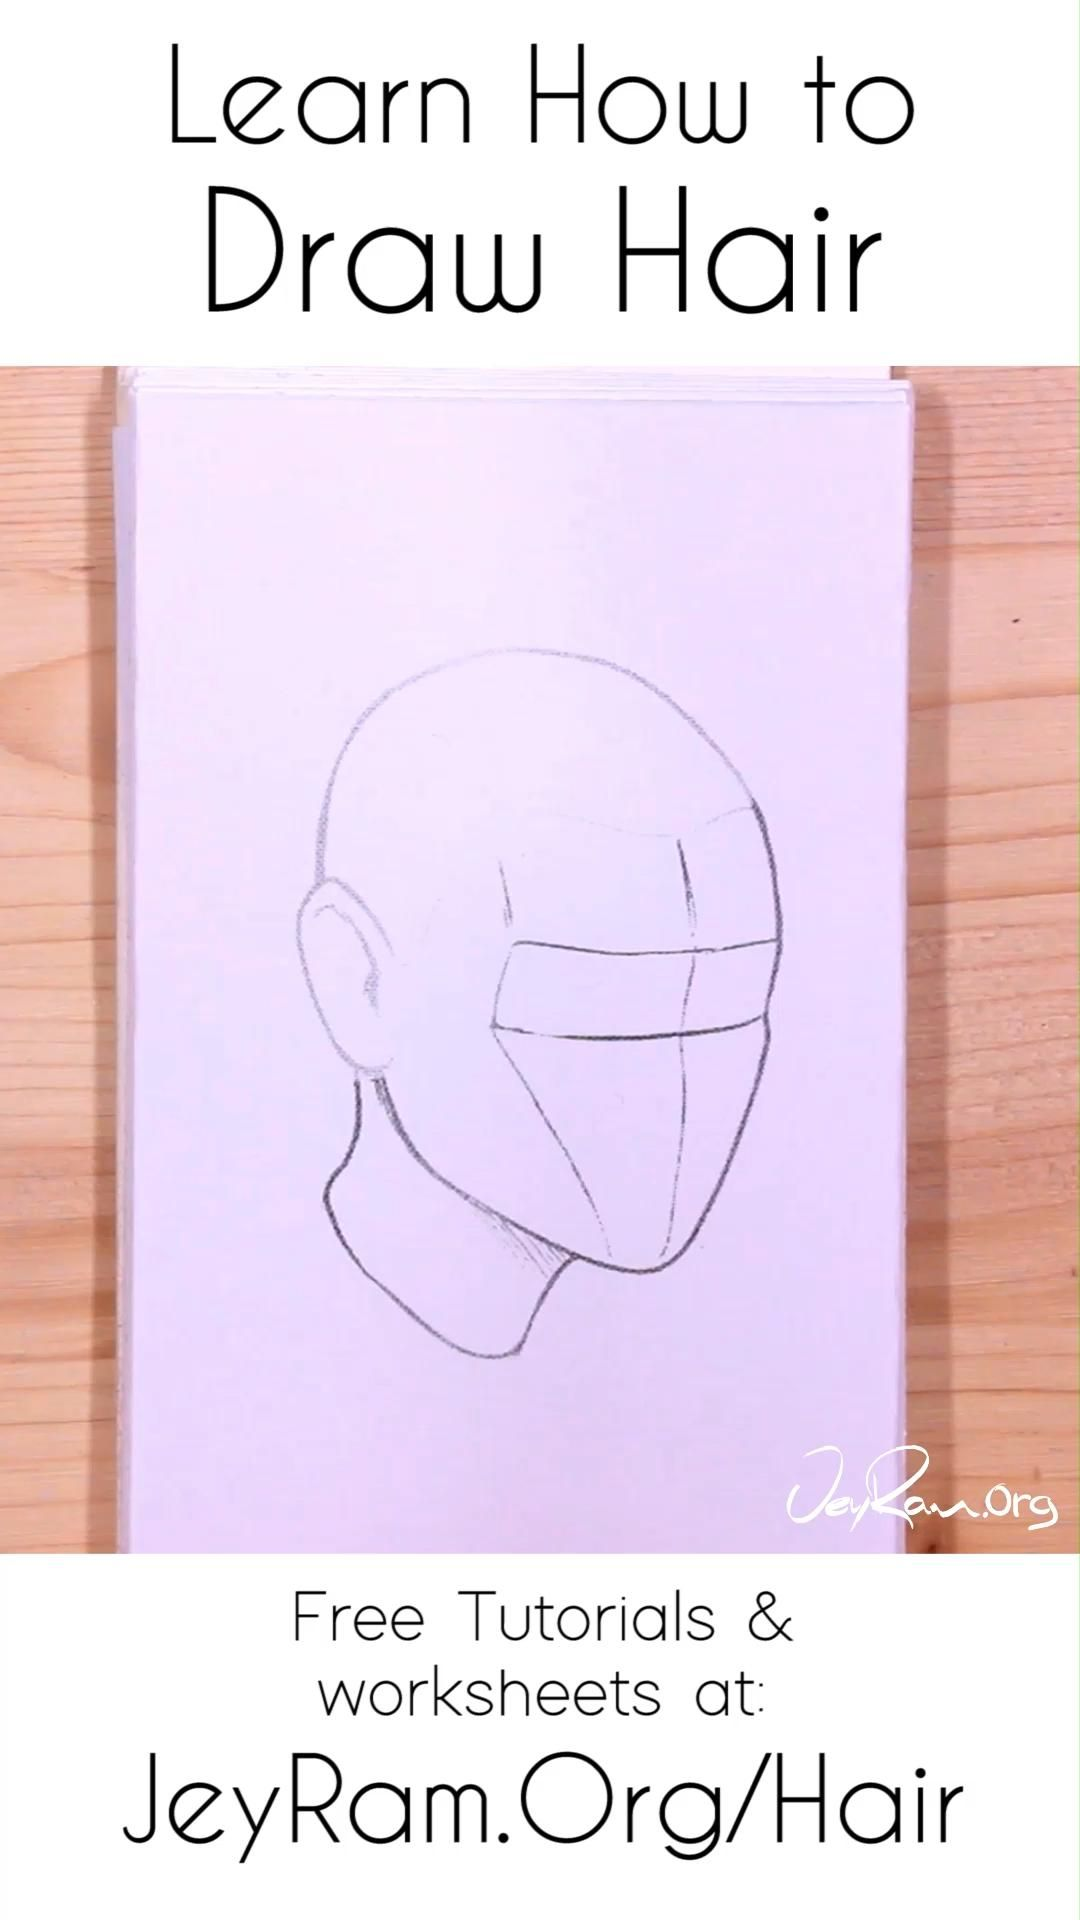 Learn How To Draw Hair With These Tutorials That Are Designed To Help You Learn All The Necessary Skills For D Video In 2020 How To Draw Hair How To Draw